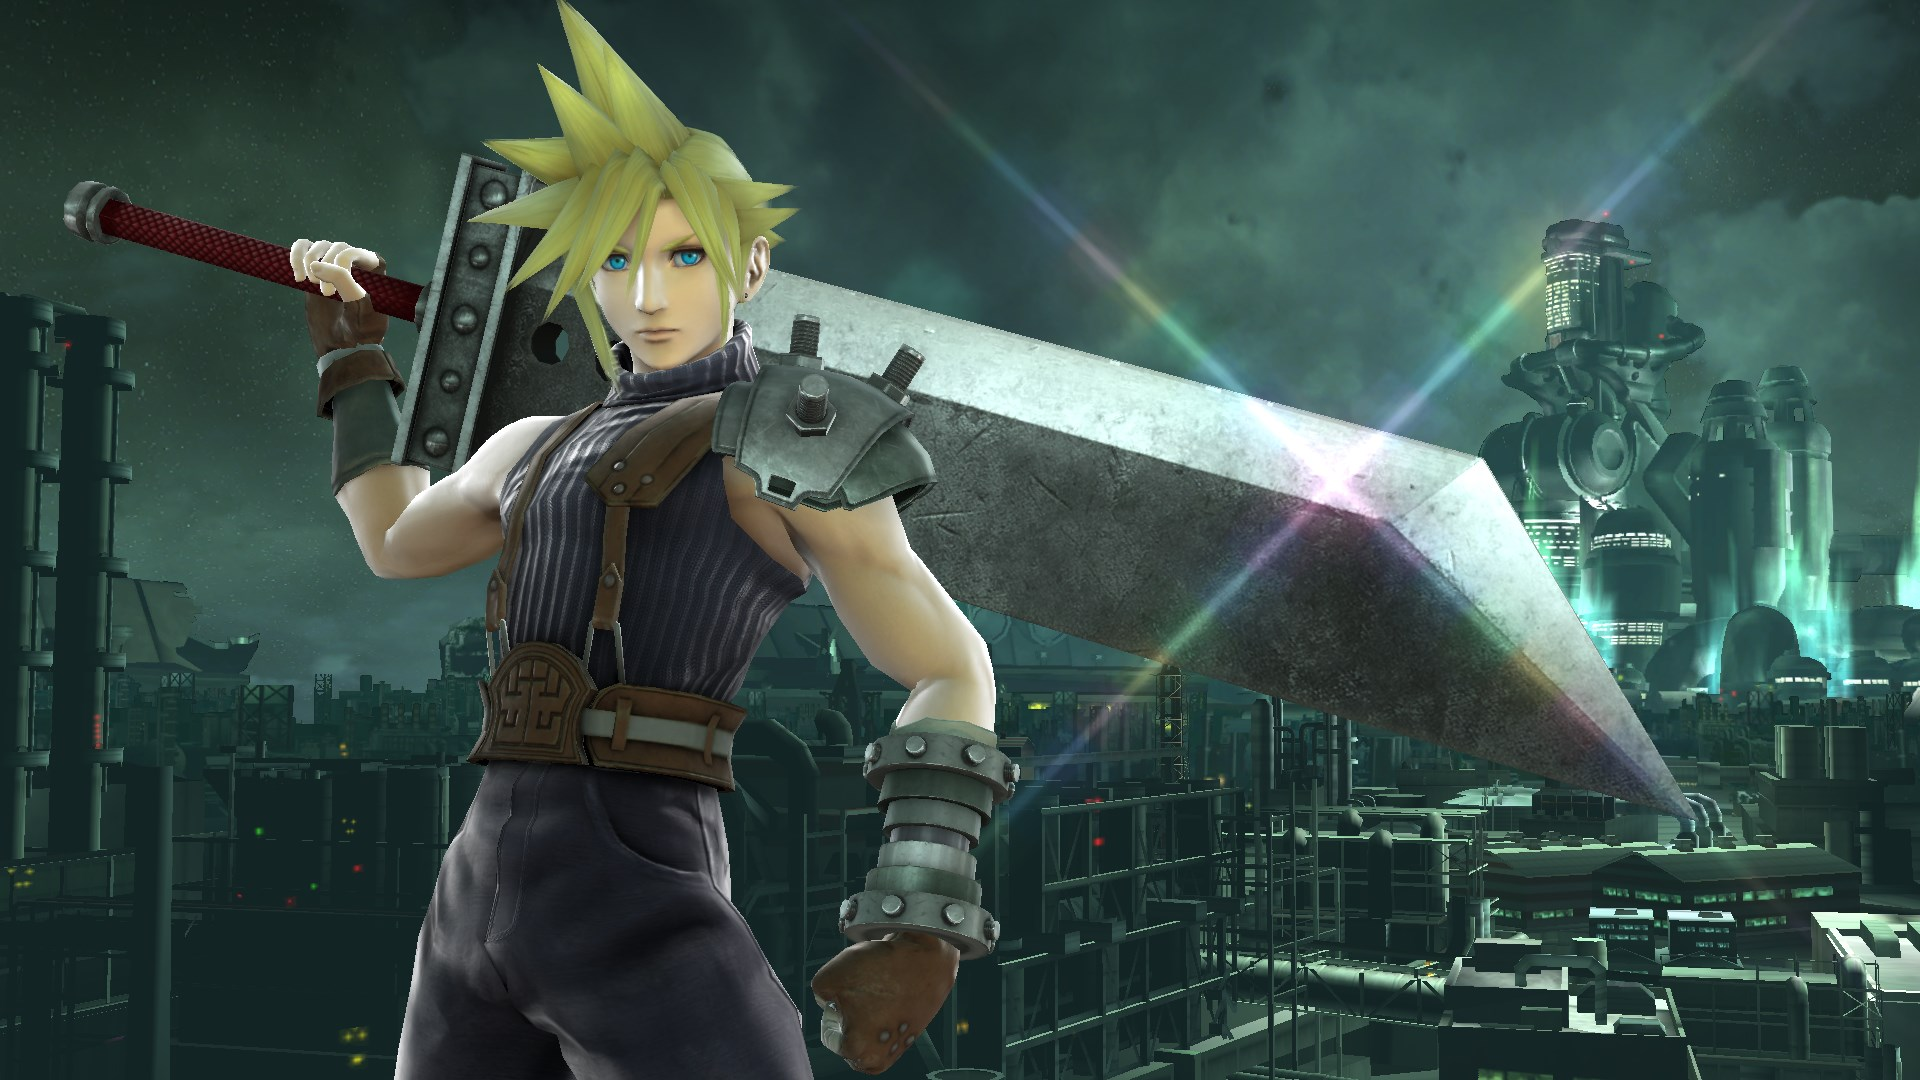 Cloud is ready to fight.